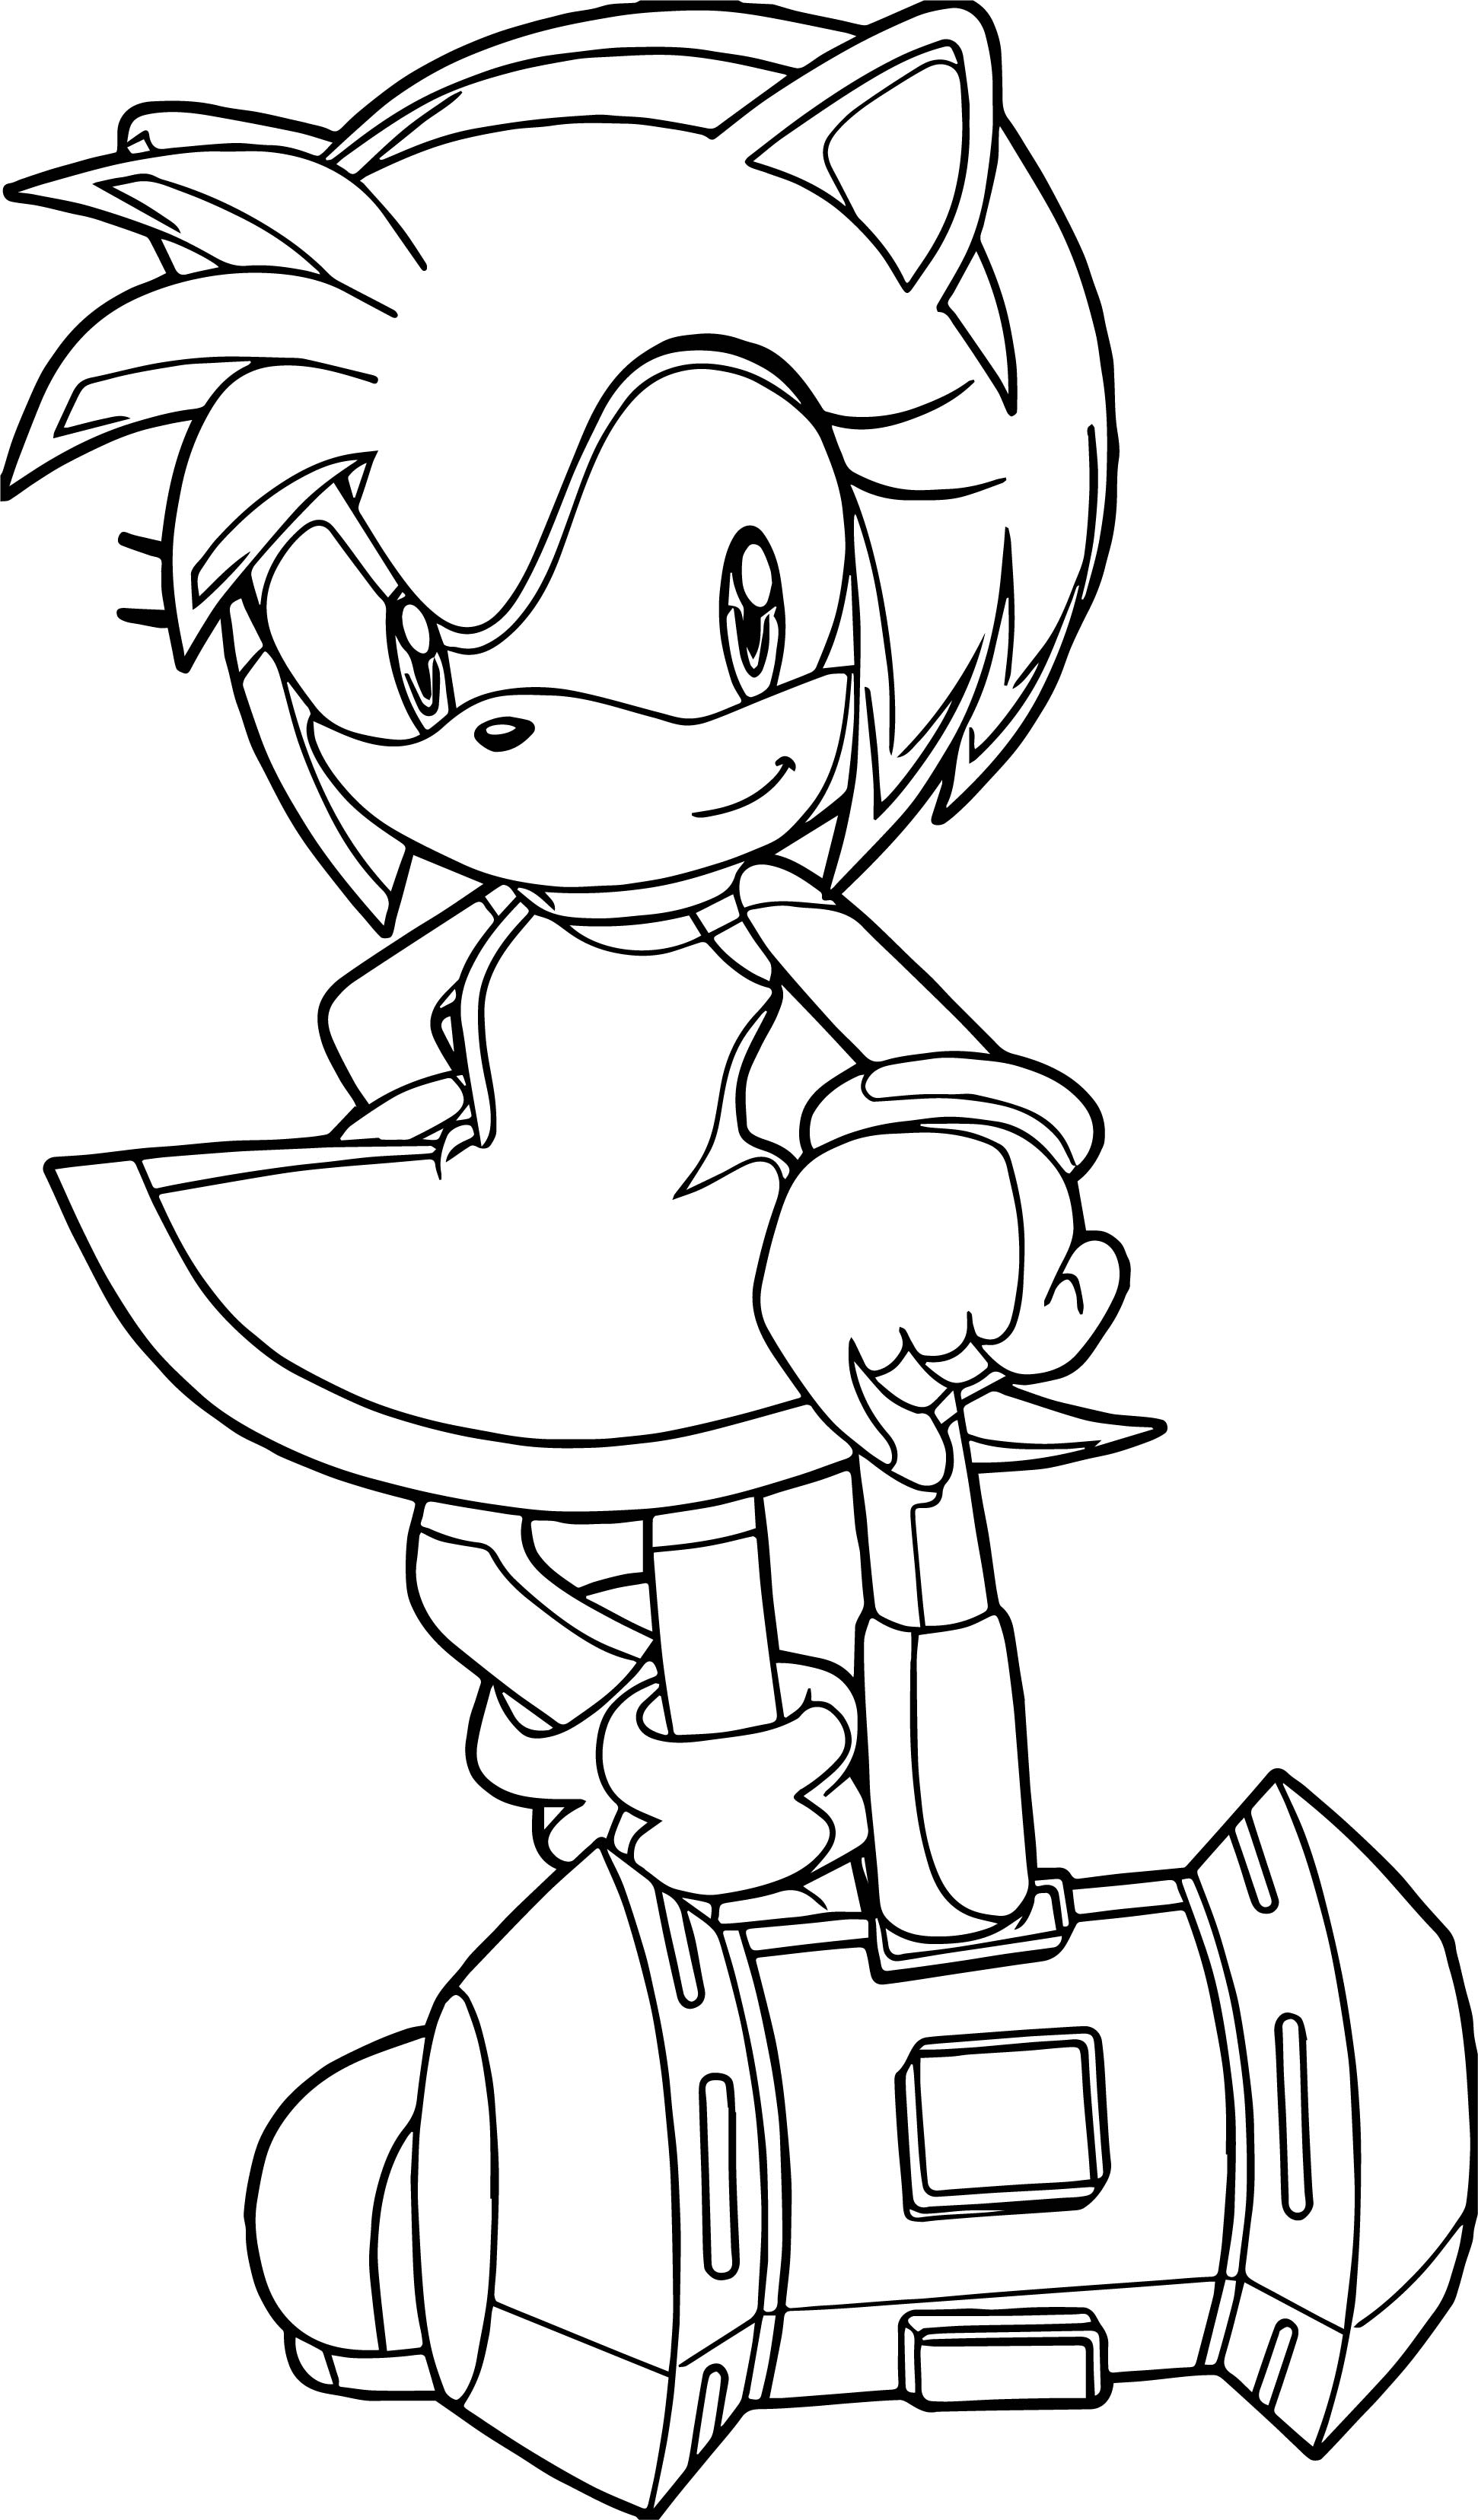 Super Amy Rose Coloring Page Wecoloringpage